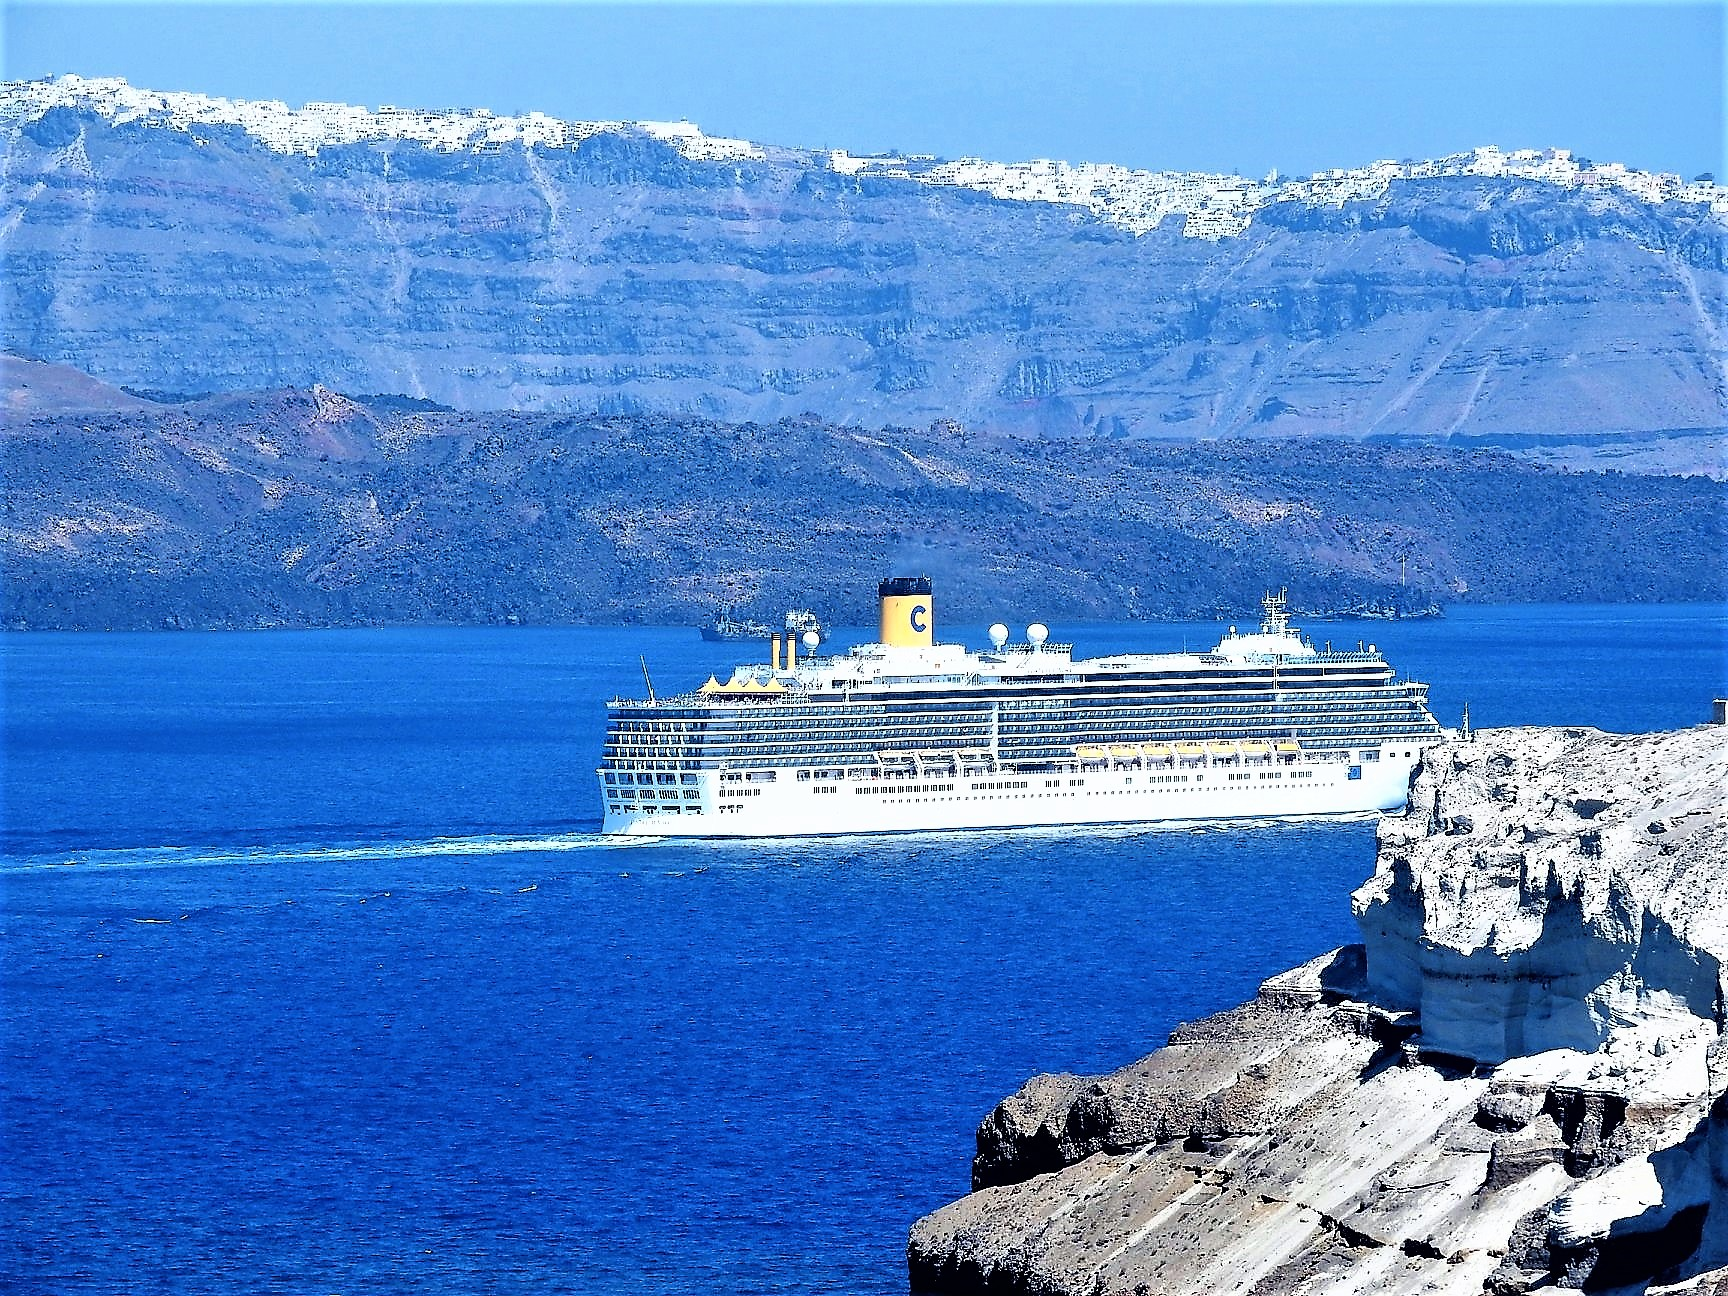 Cruise ship crossing the sea in Santorini